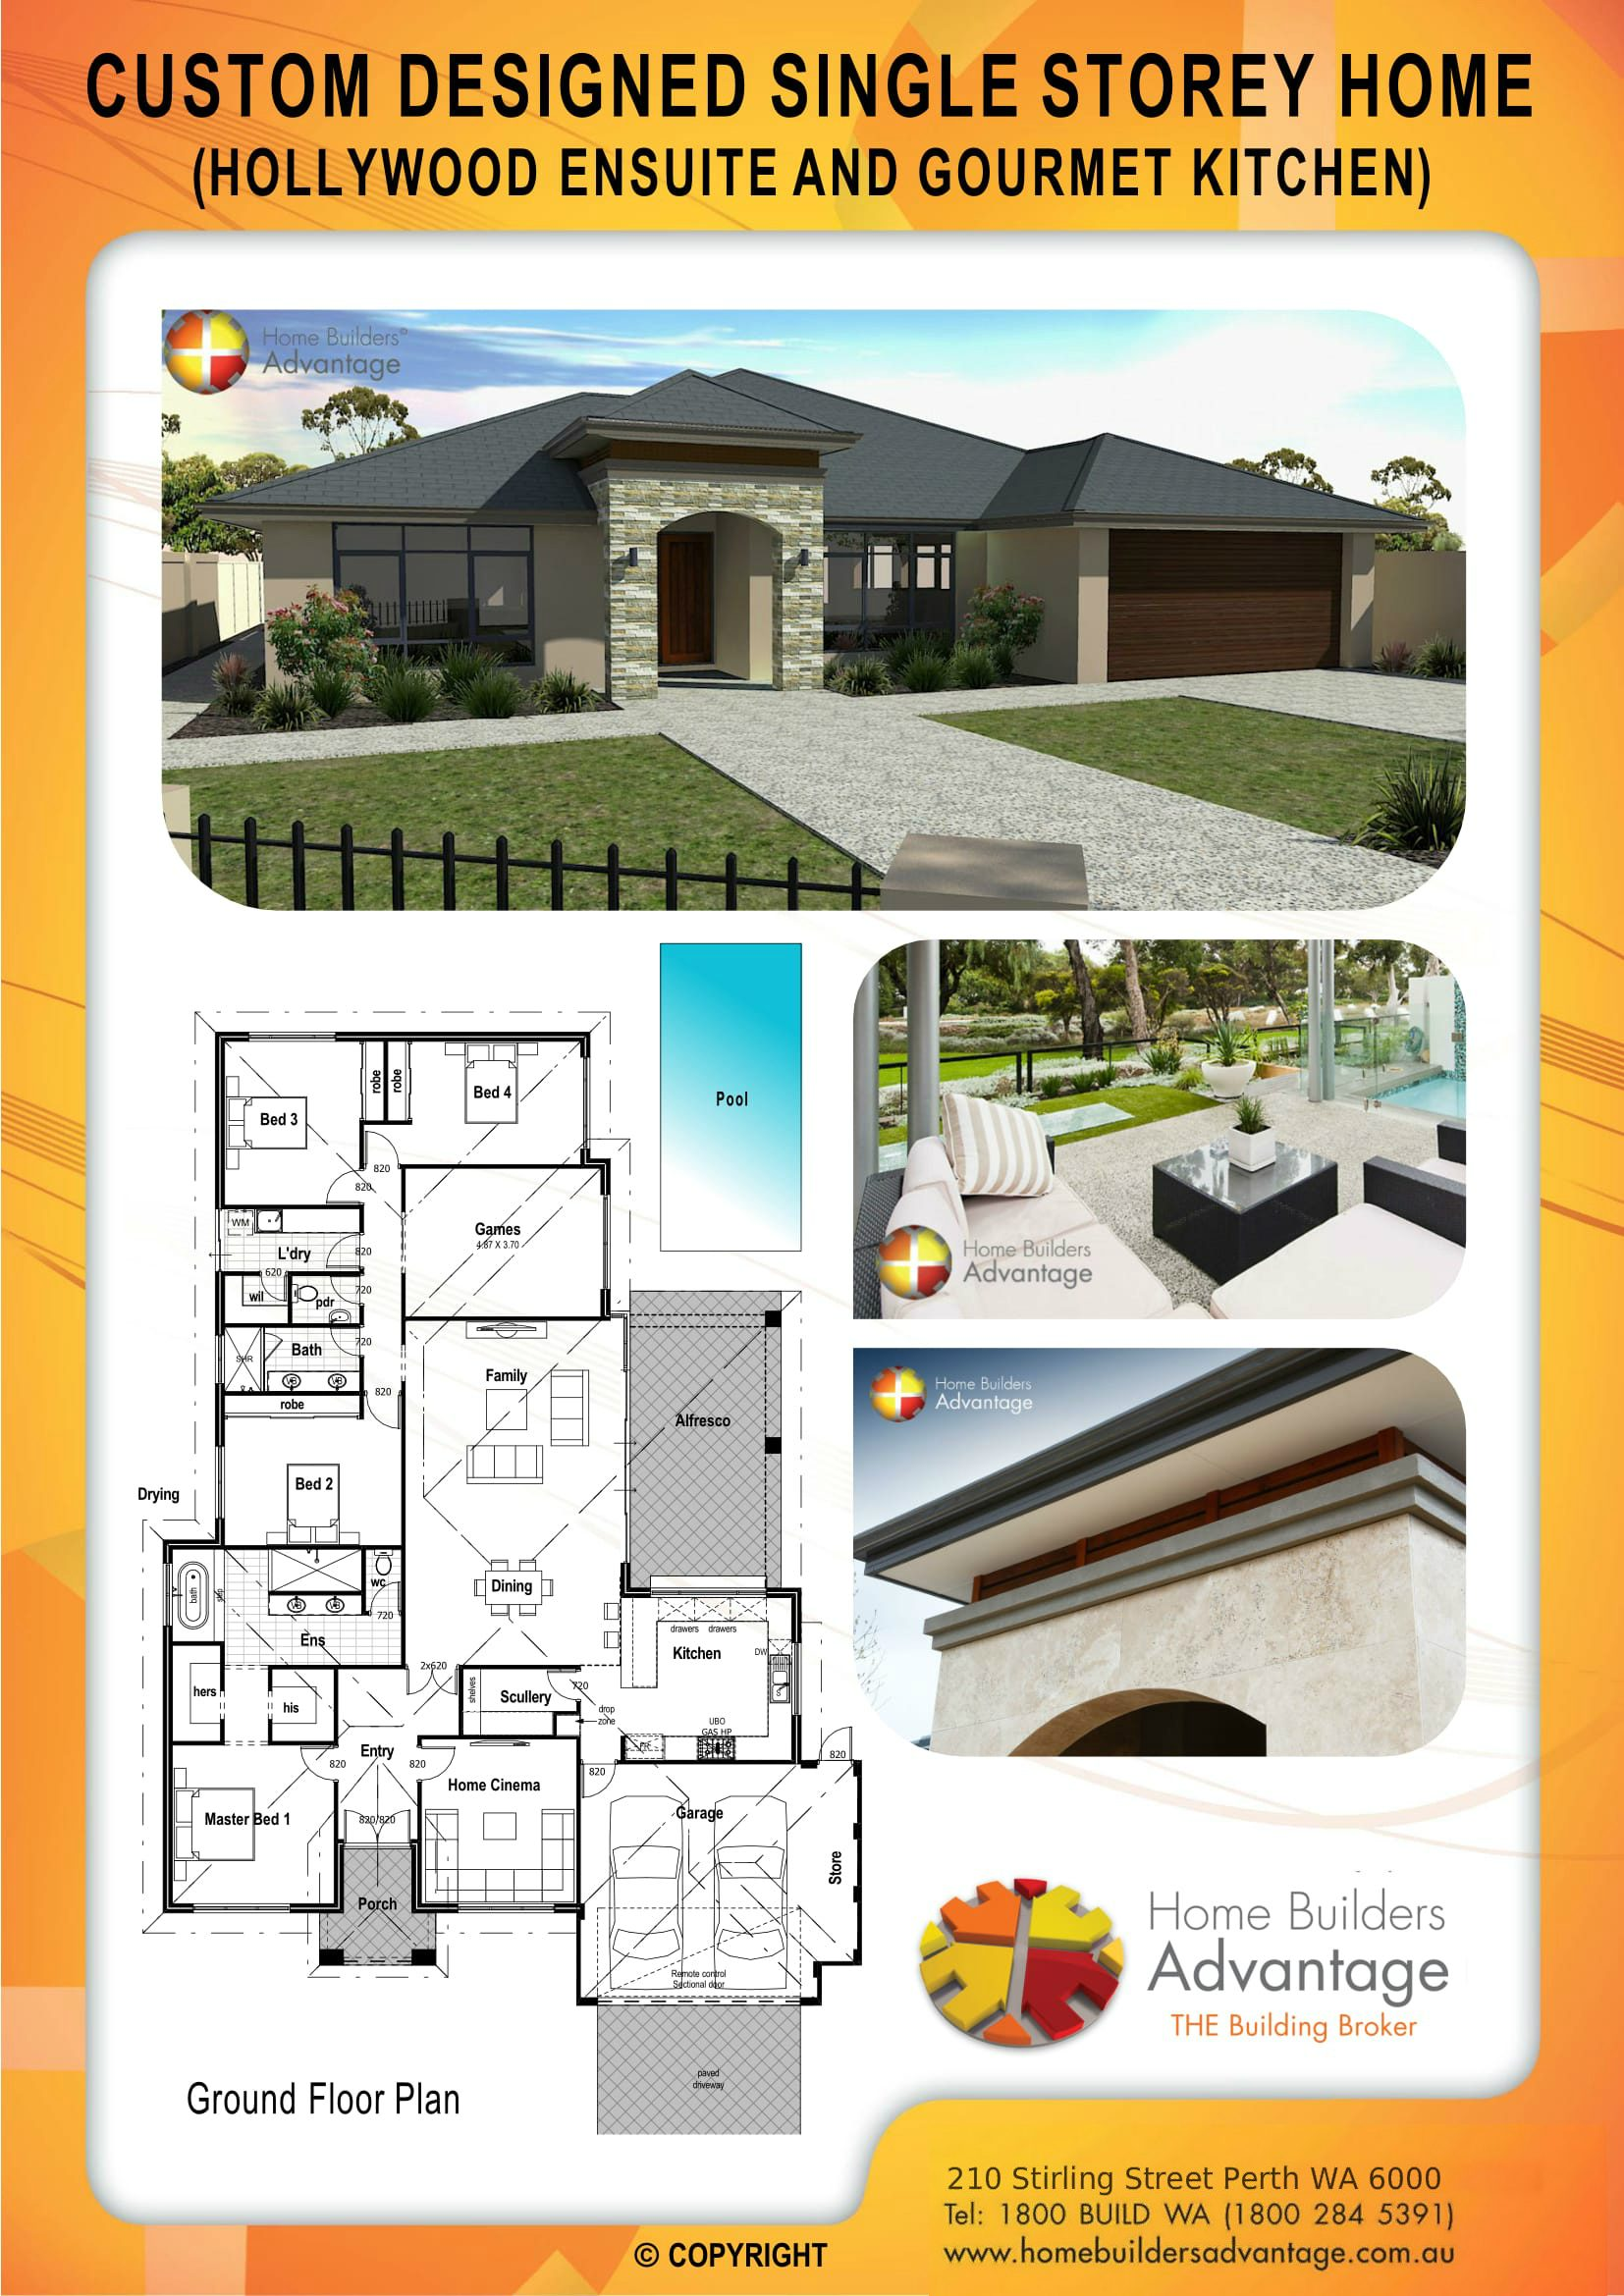 Custom Designed Single Storey Home (Hollywood Ensuite And Gourmet Kitchen) Floor Plan Home Builders Advantage Perth The Building Broker